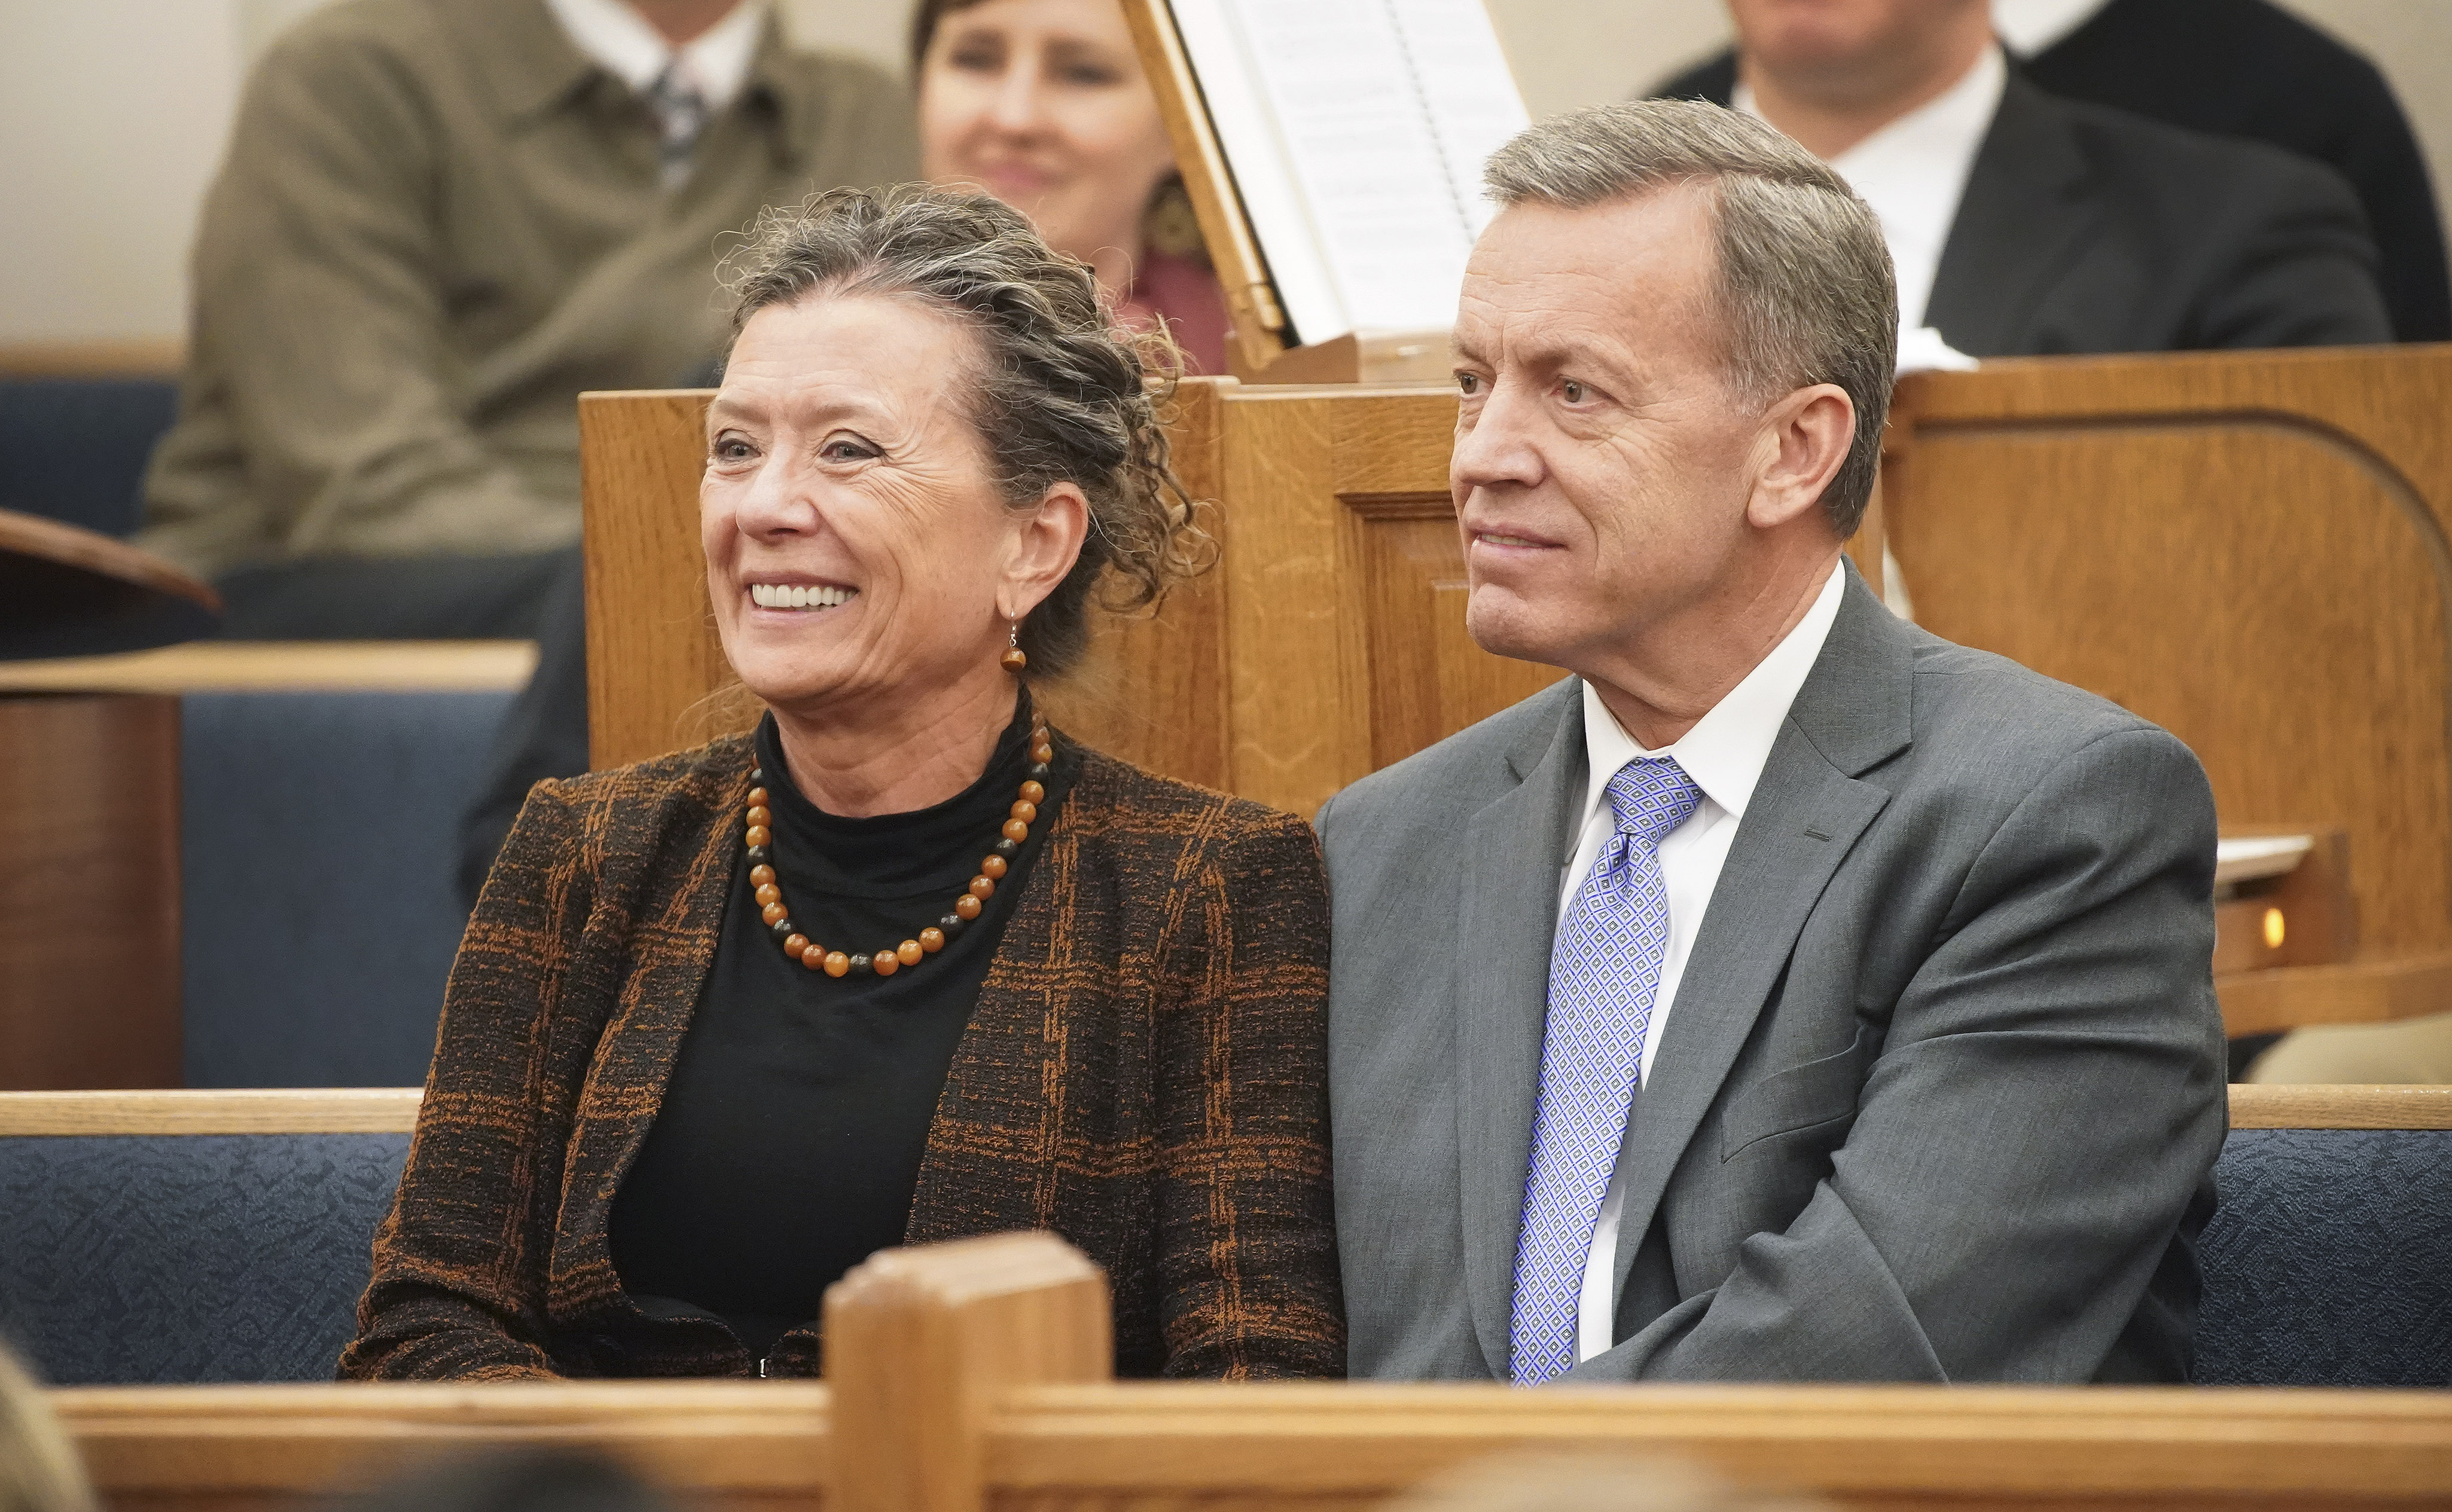 Elder Randall Bennett, General Authority Seventy of The Church of Jesus Christ of Latter-day Saints, sits with his wife, Sister Shelley Bennett, during a fireside in Boston on Saturday, Oct. 19, 2019.